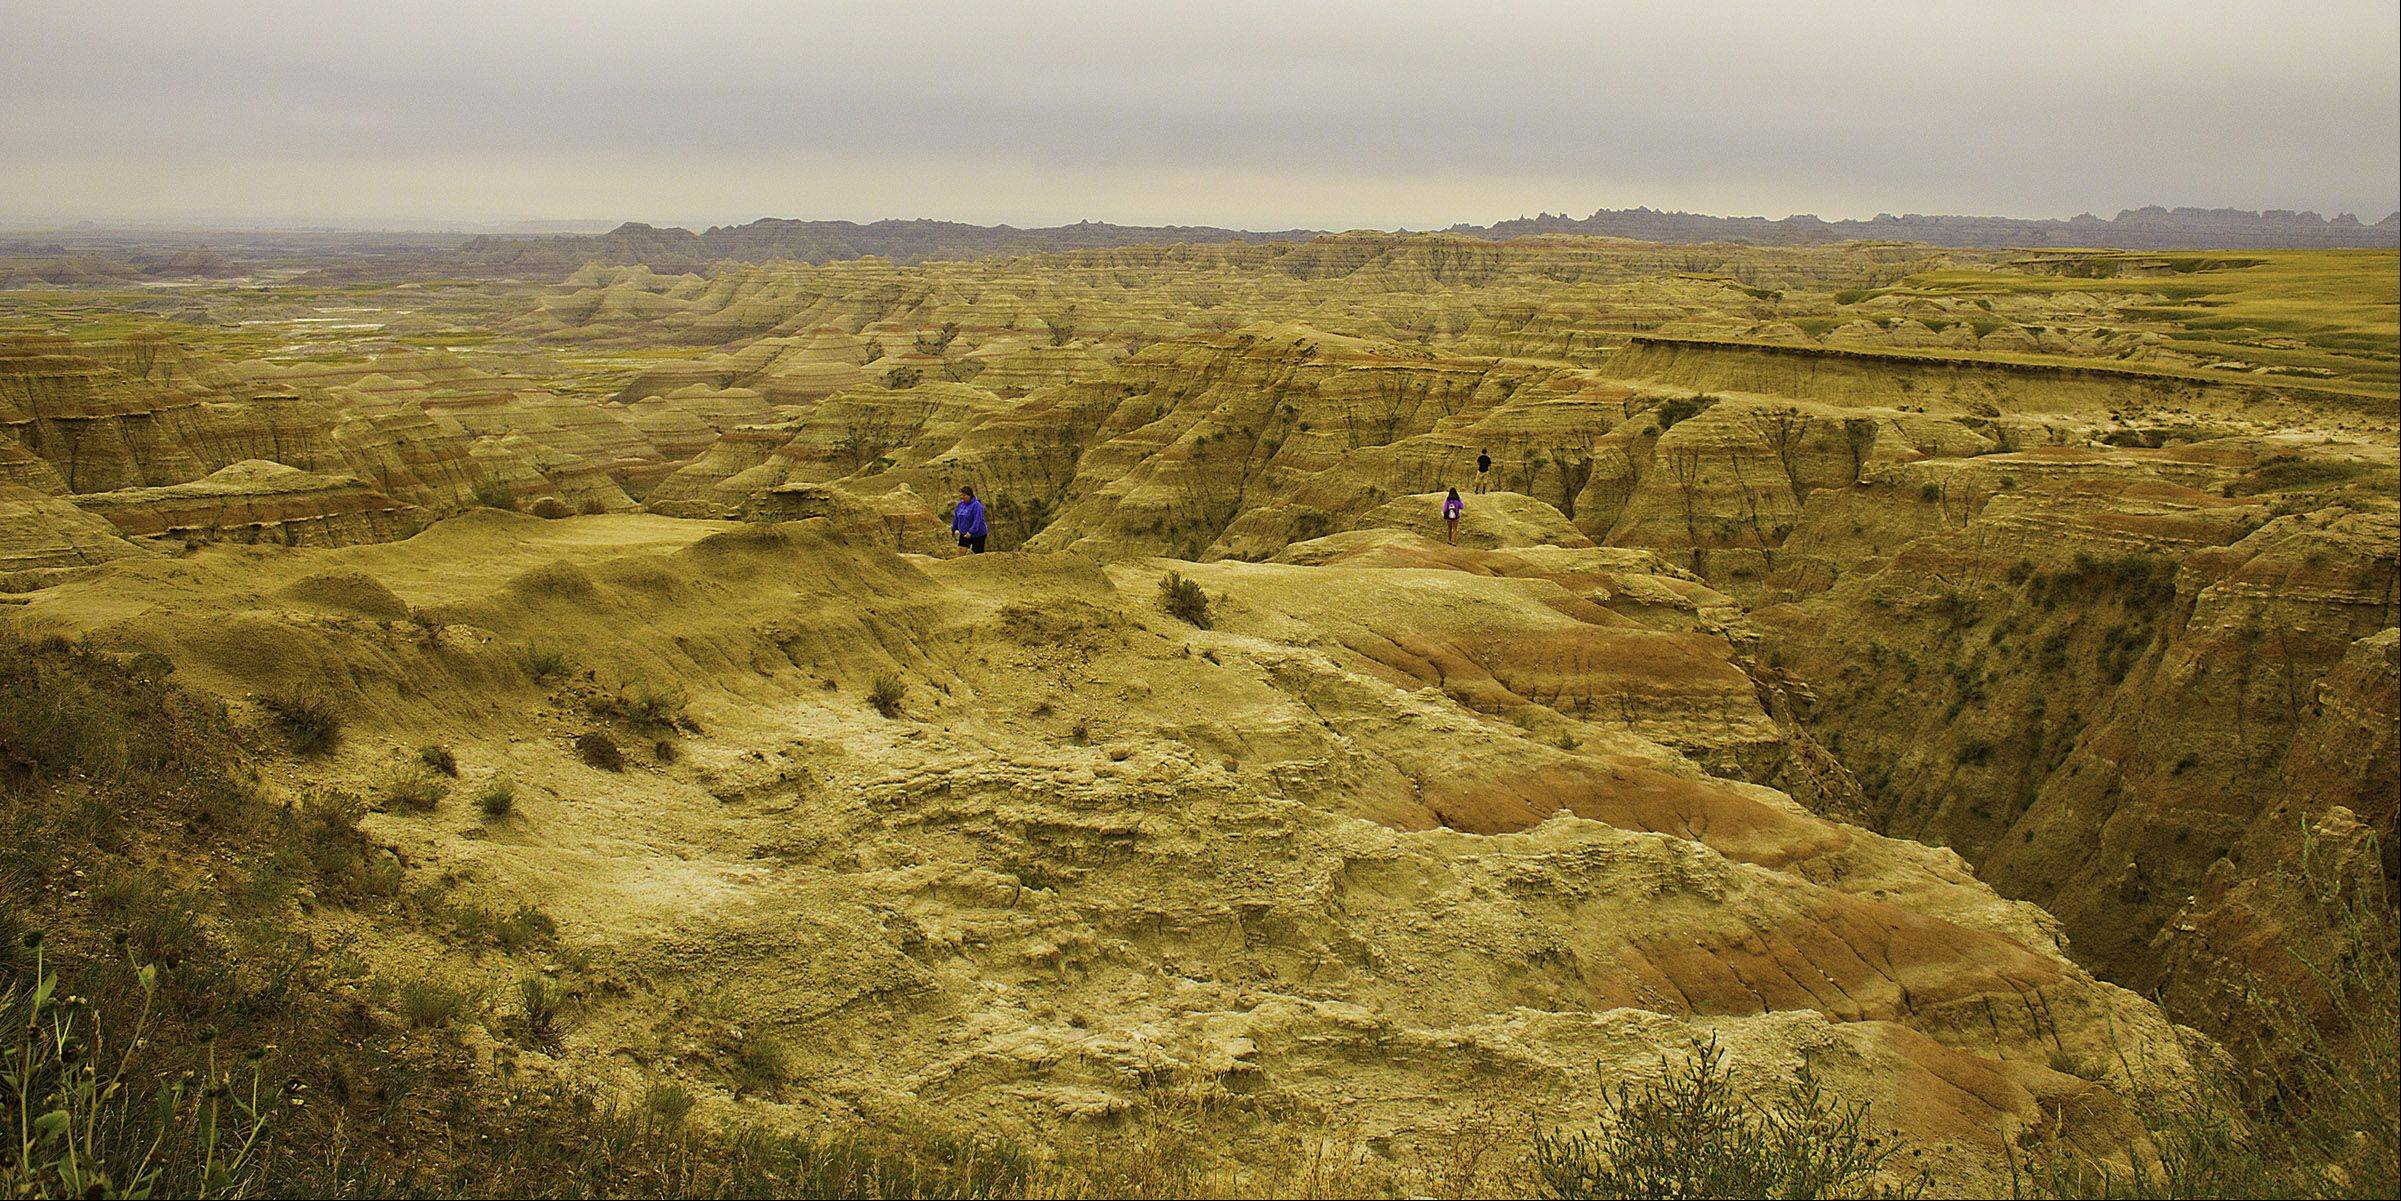 Hikers climb the cliffs in the South Dakota Badlands on September 8th looking at its immense size, colorations and unique beauty.